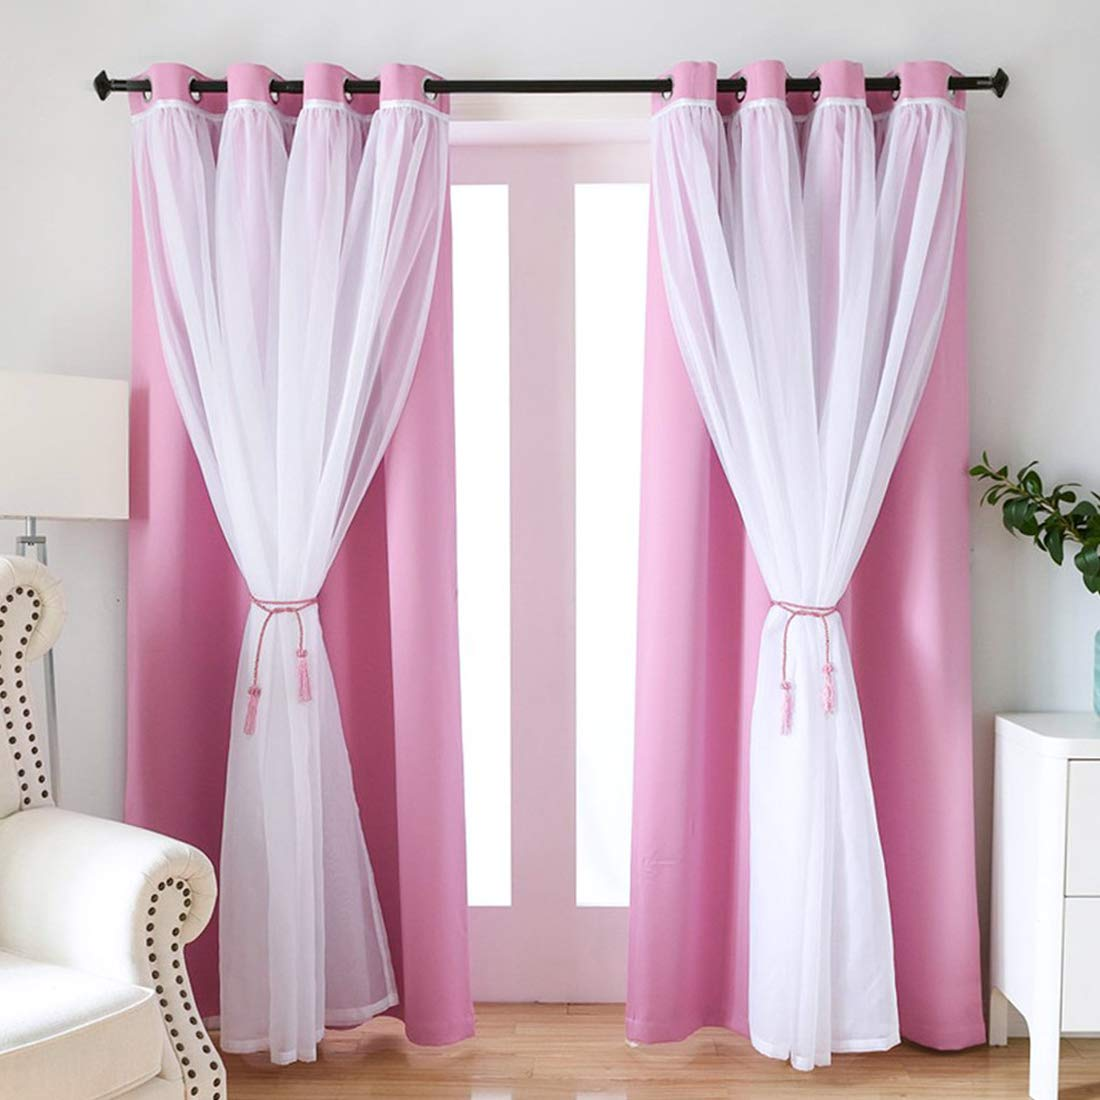 Double Layers Mix Match Elegance White Voile and Blackout Draperies Curtains, SearchI Solid Grommet Blackout Room Darkening Curtains Panels Drapes for Girls Bedroom, 42''W x 63''L, Solid Pink, 1 Panle by SearchI